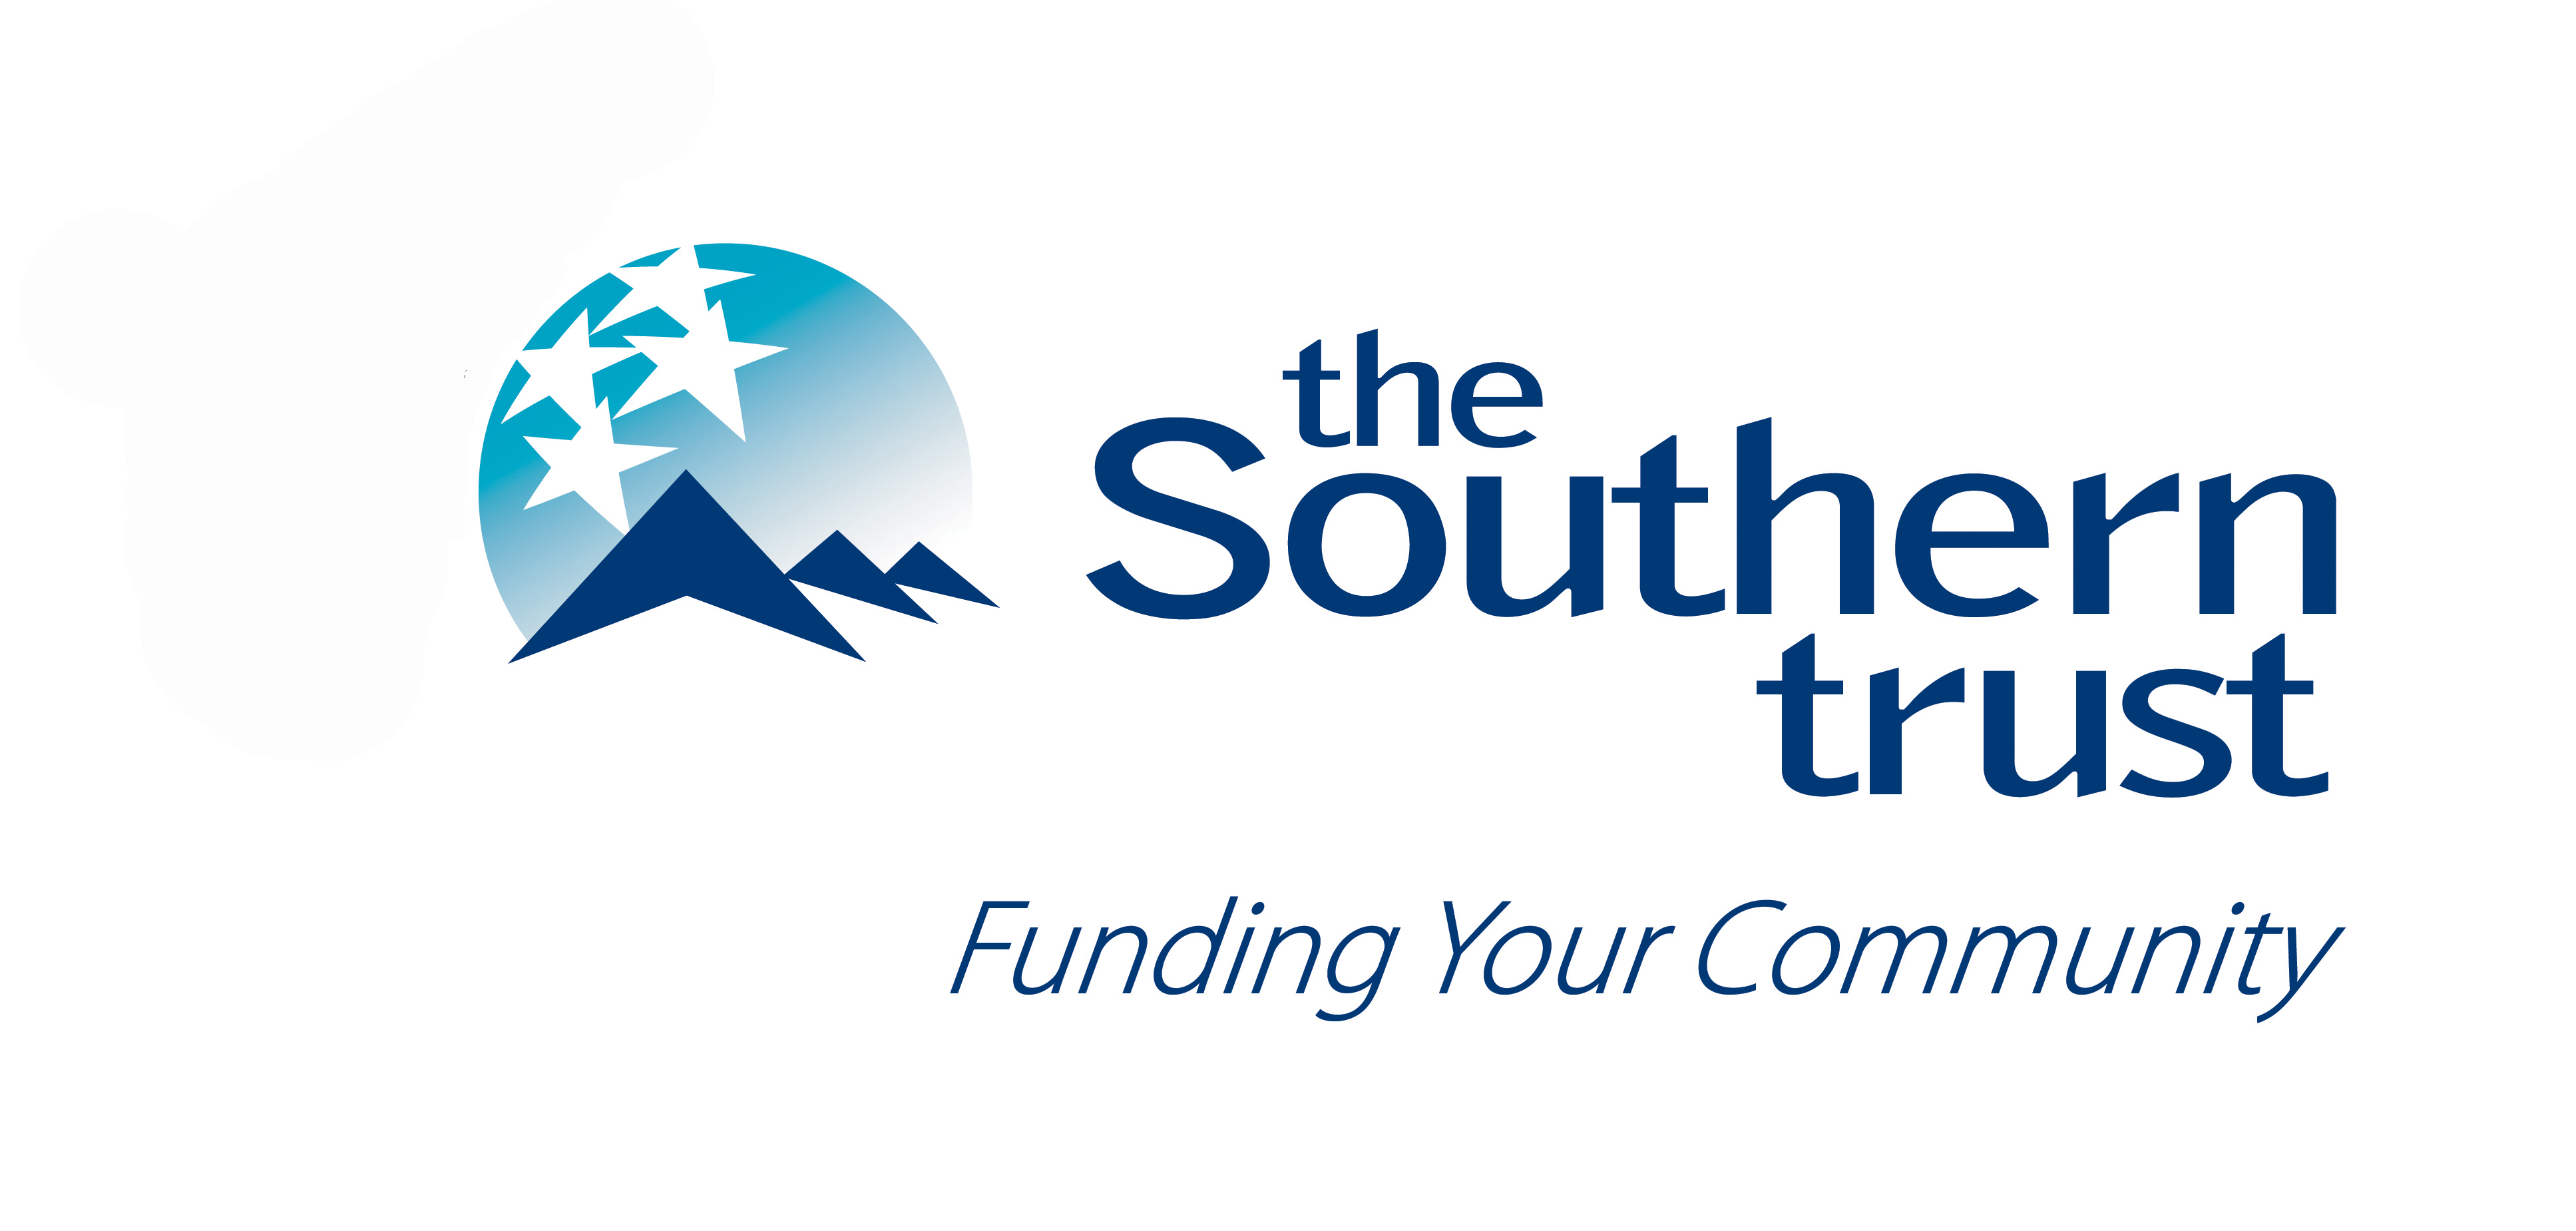 TST Logo#1 The_Southern_Trust_Funding_Your_Com High Res